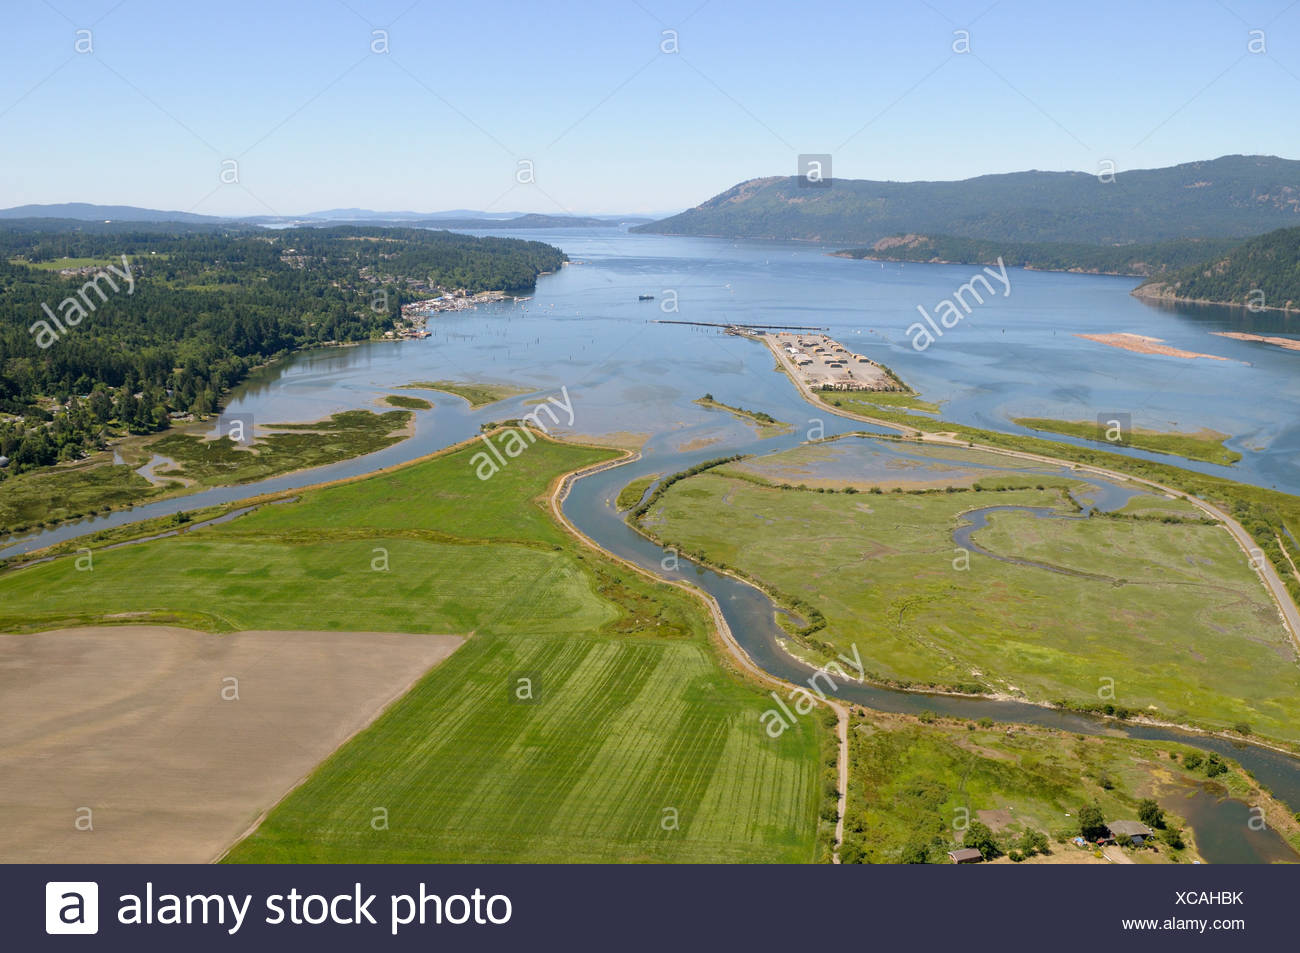 Aerial photograph of Cowichan Bay's estuary, Vancouver Island, British Columbia, Canada. Stock Photo